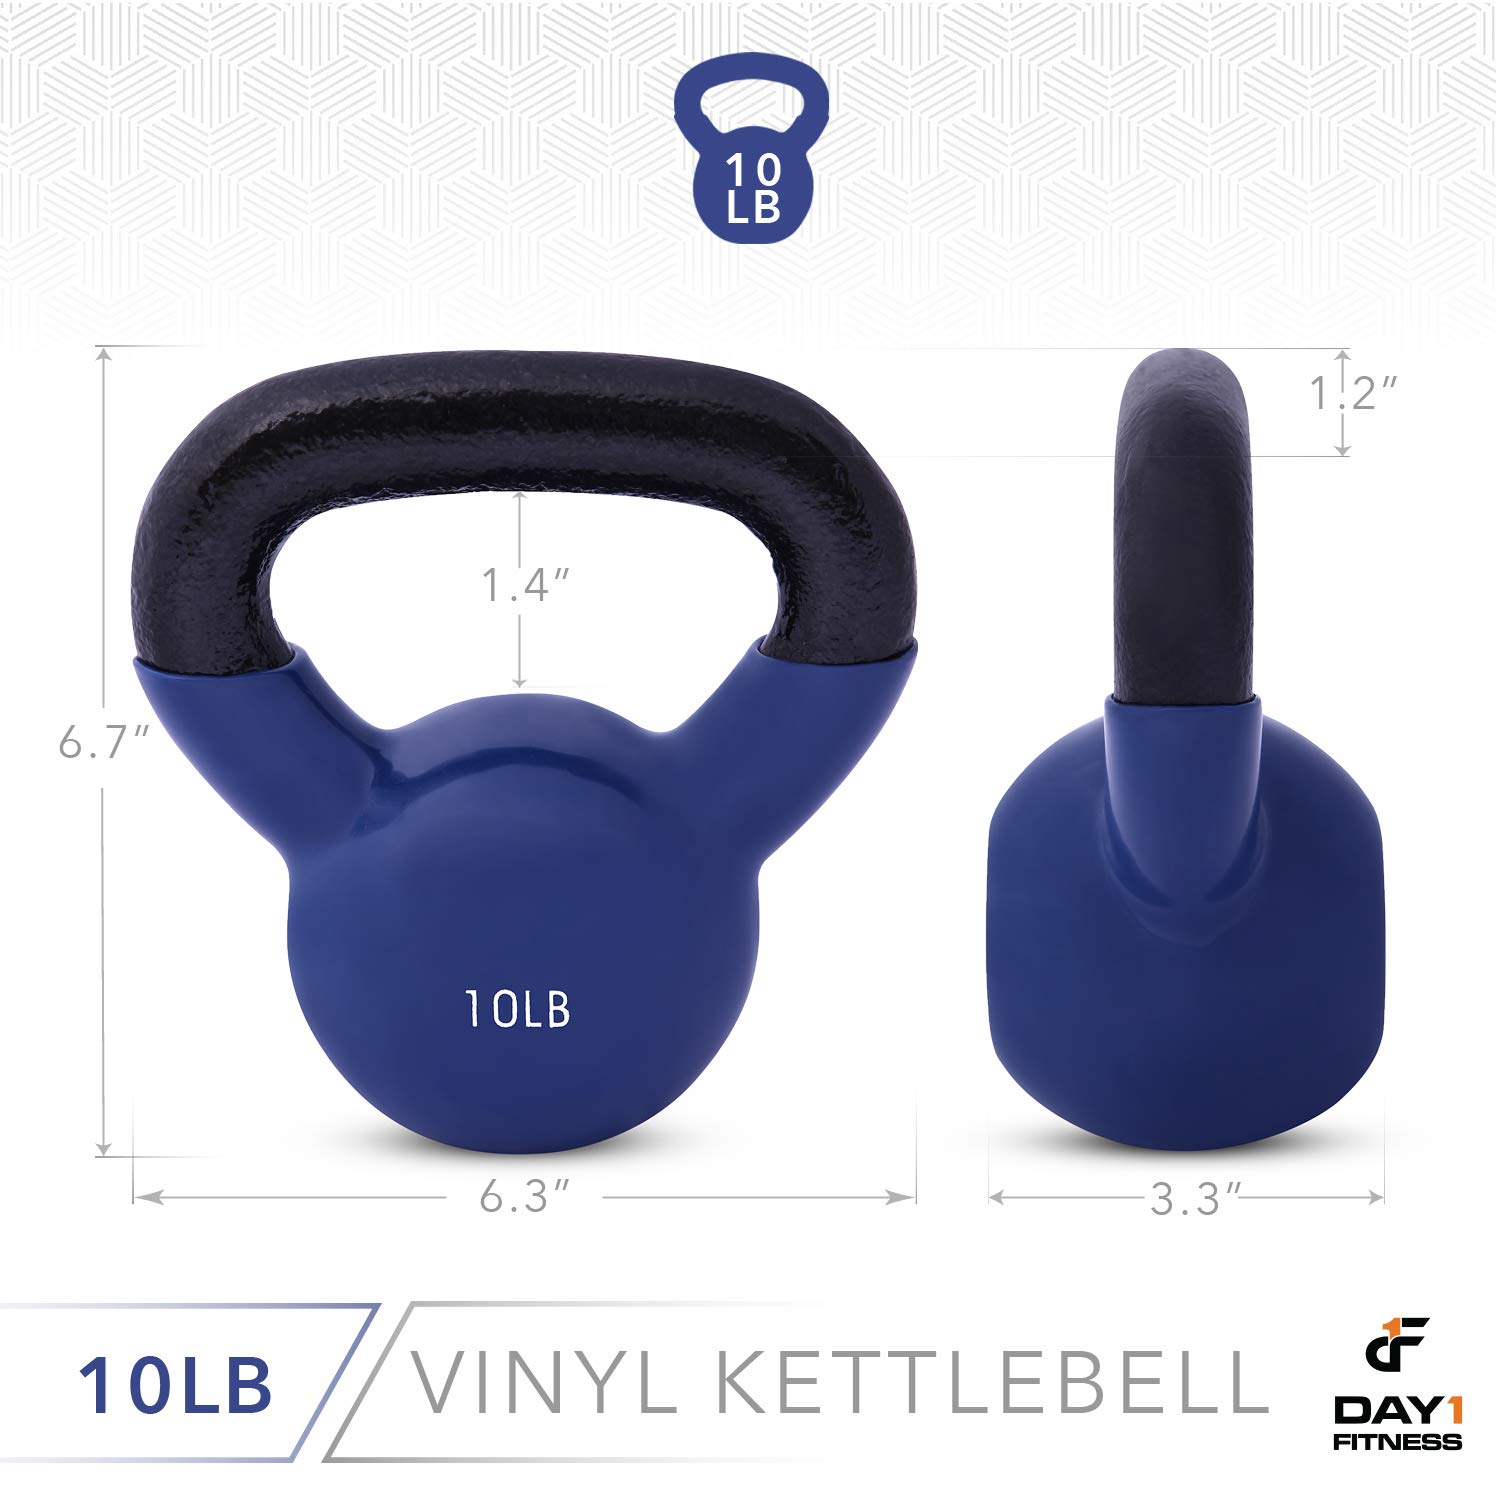 Day 1 Fitness Kettlebell Weights Vinyl Coated Iron 10 Pounds - Coated for Floor and Equipment Protection, Noise Reduction - Free Weights for Ballistic, Core, Weight Training by Day 1 Fitness (Image #3)